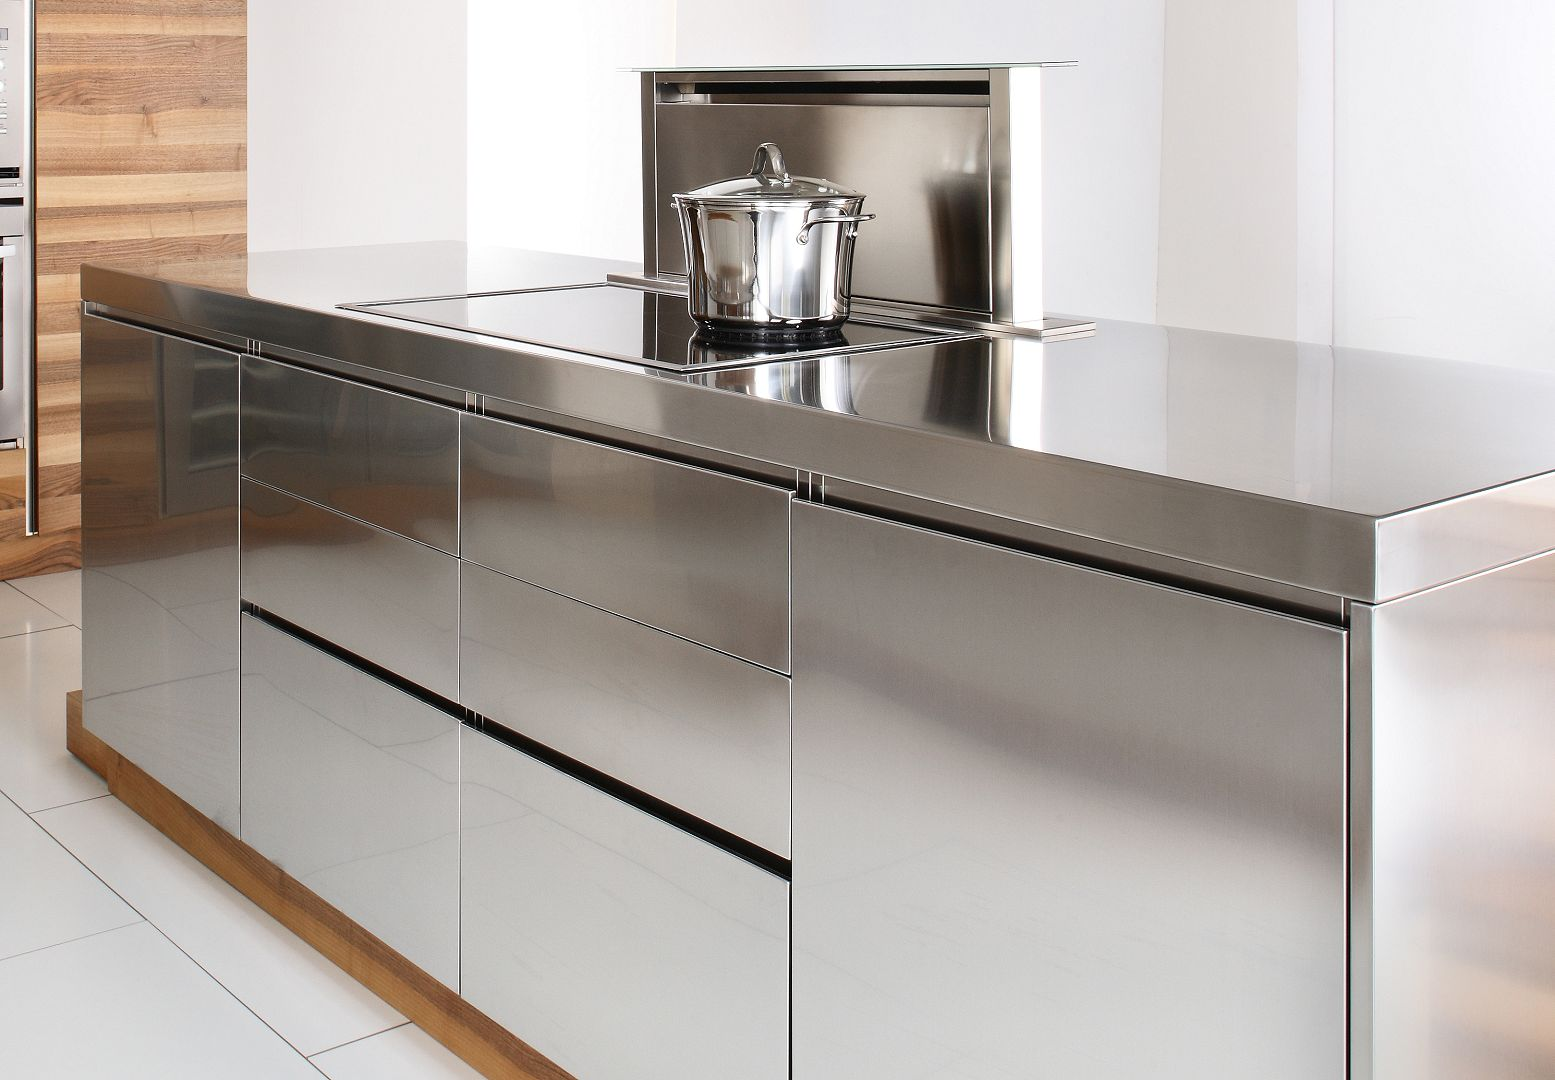 Arca Cucine Italy - Domestic stainless steel kitchens - Open - Handle Detail And Hood